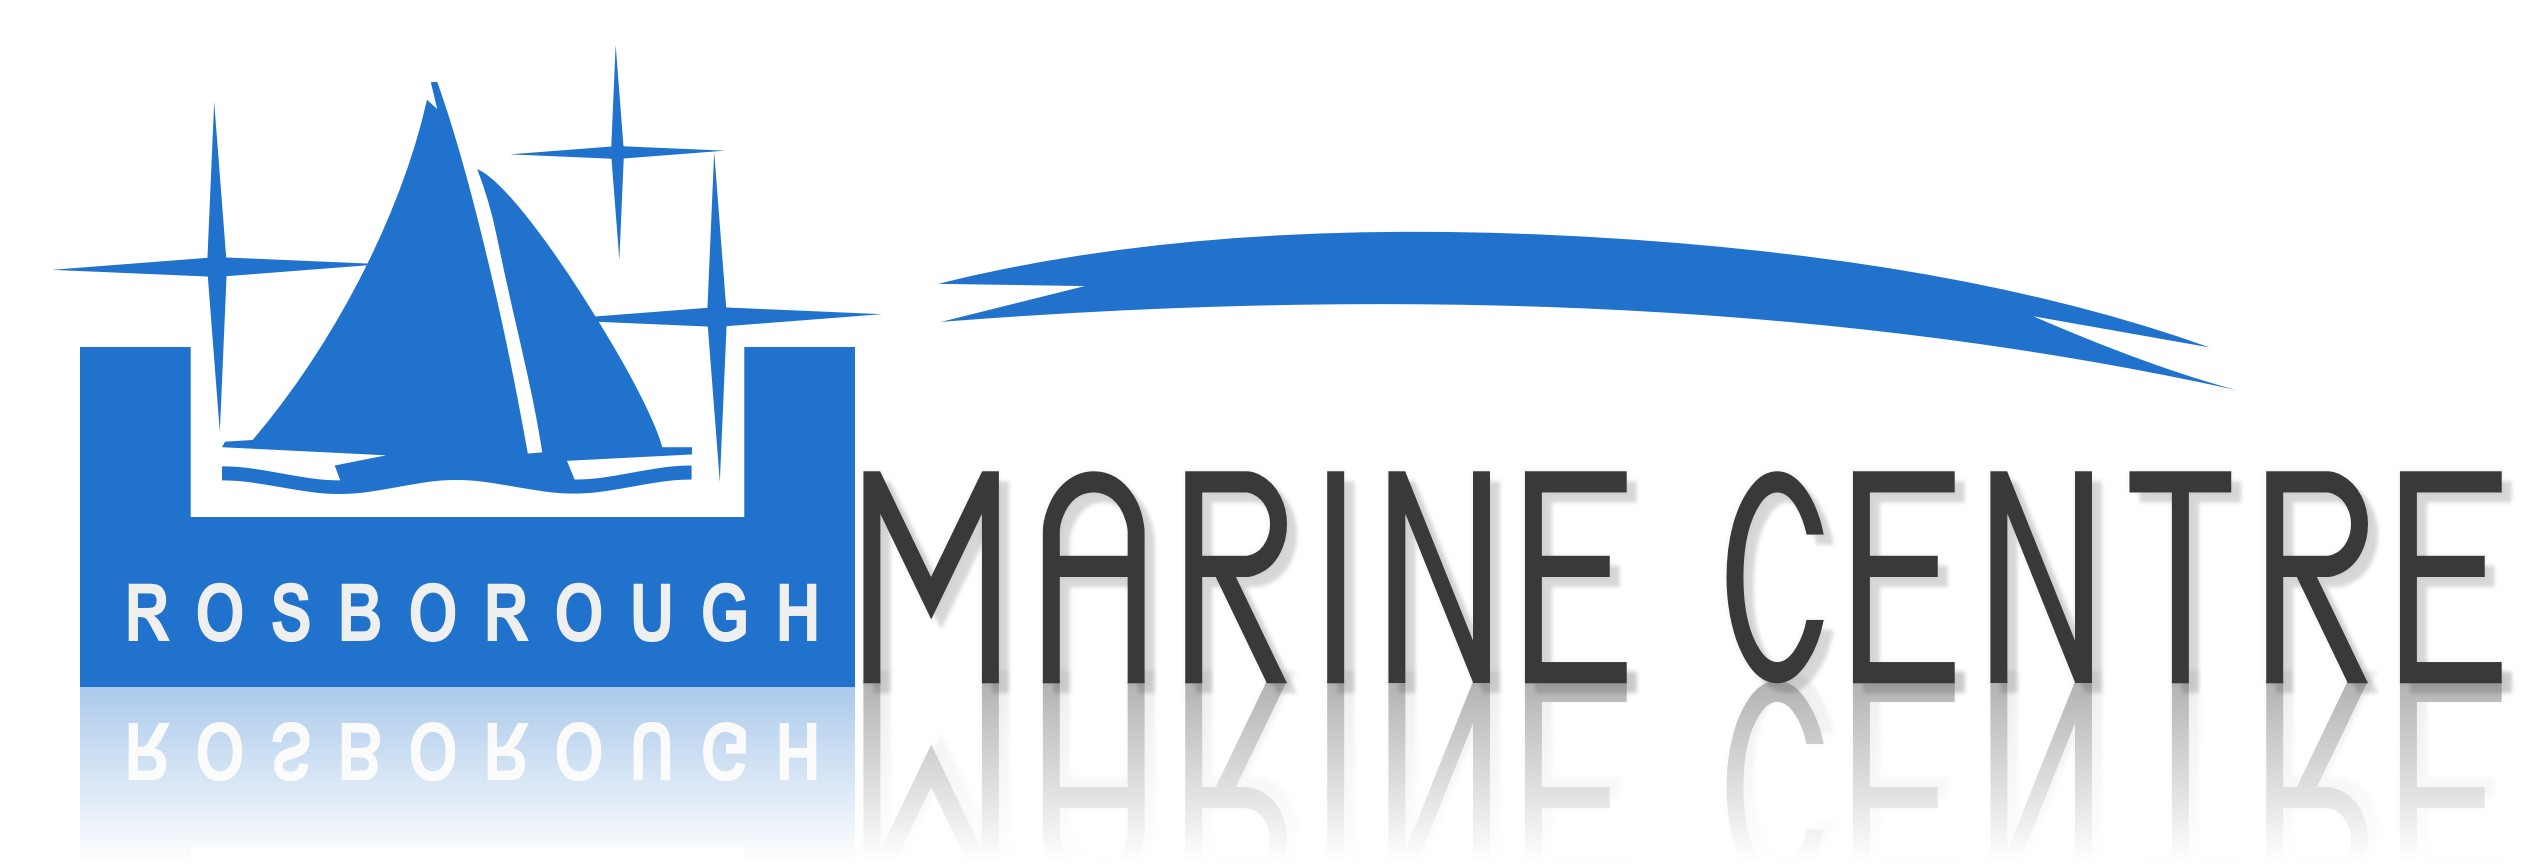 Logo Design by Zemzoumi Radouane - Entry No. 105 in the Logo Design Contest Rosborough Marine Centre Logo Design.